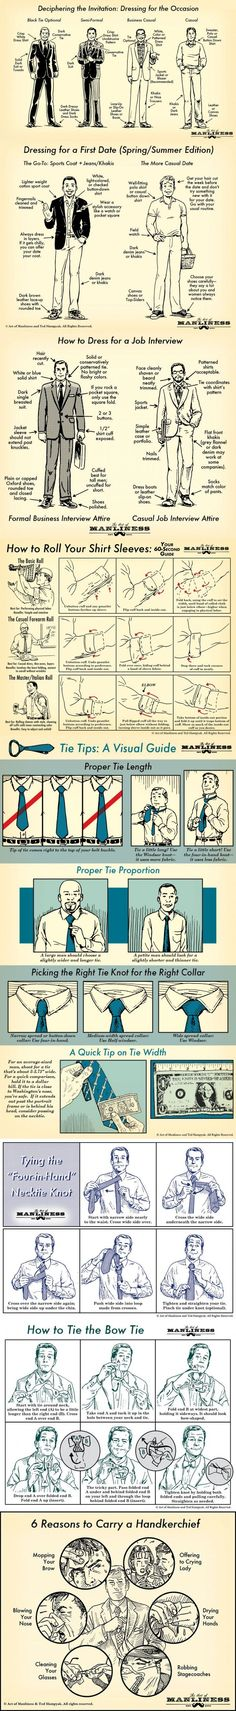 Dress like a man!  // funny pictures - funny photos - funny images - funny pics - funny quotes - #lol #humor #funnypictures